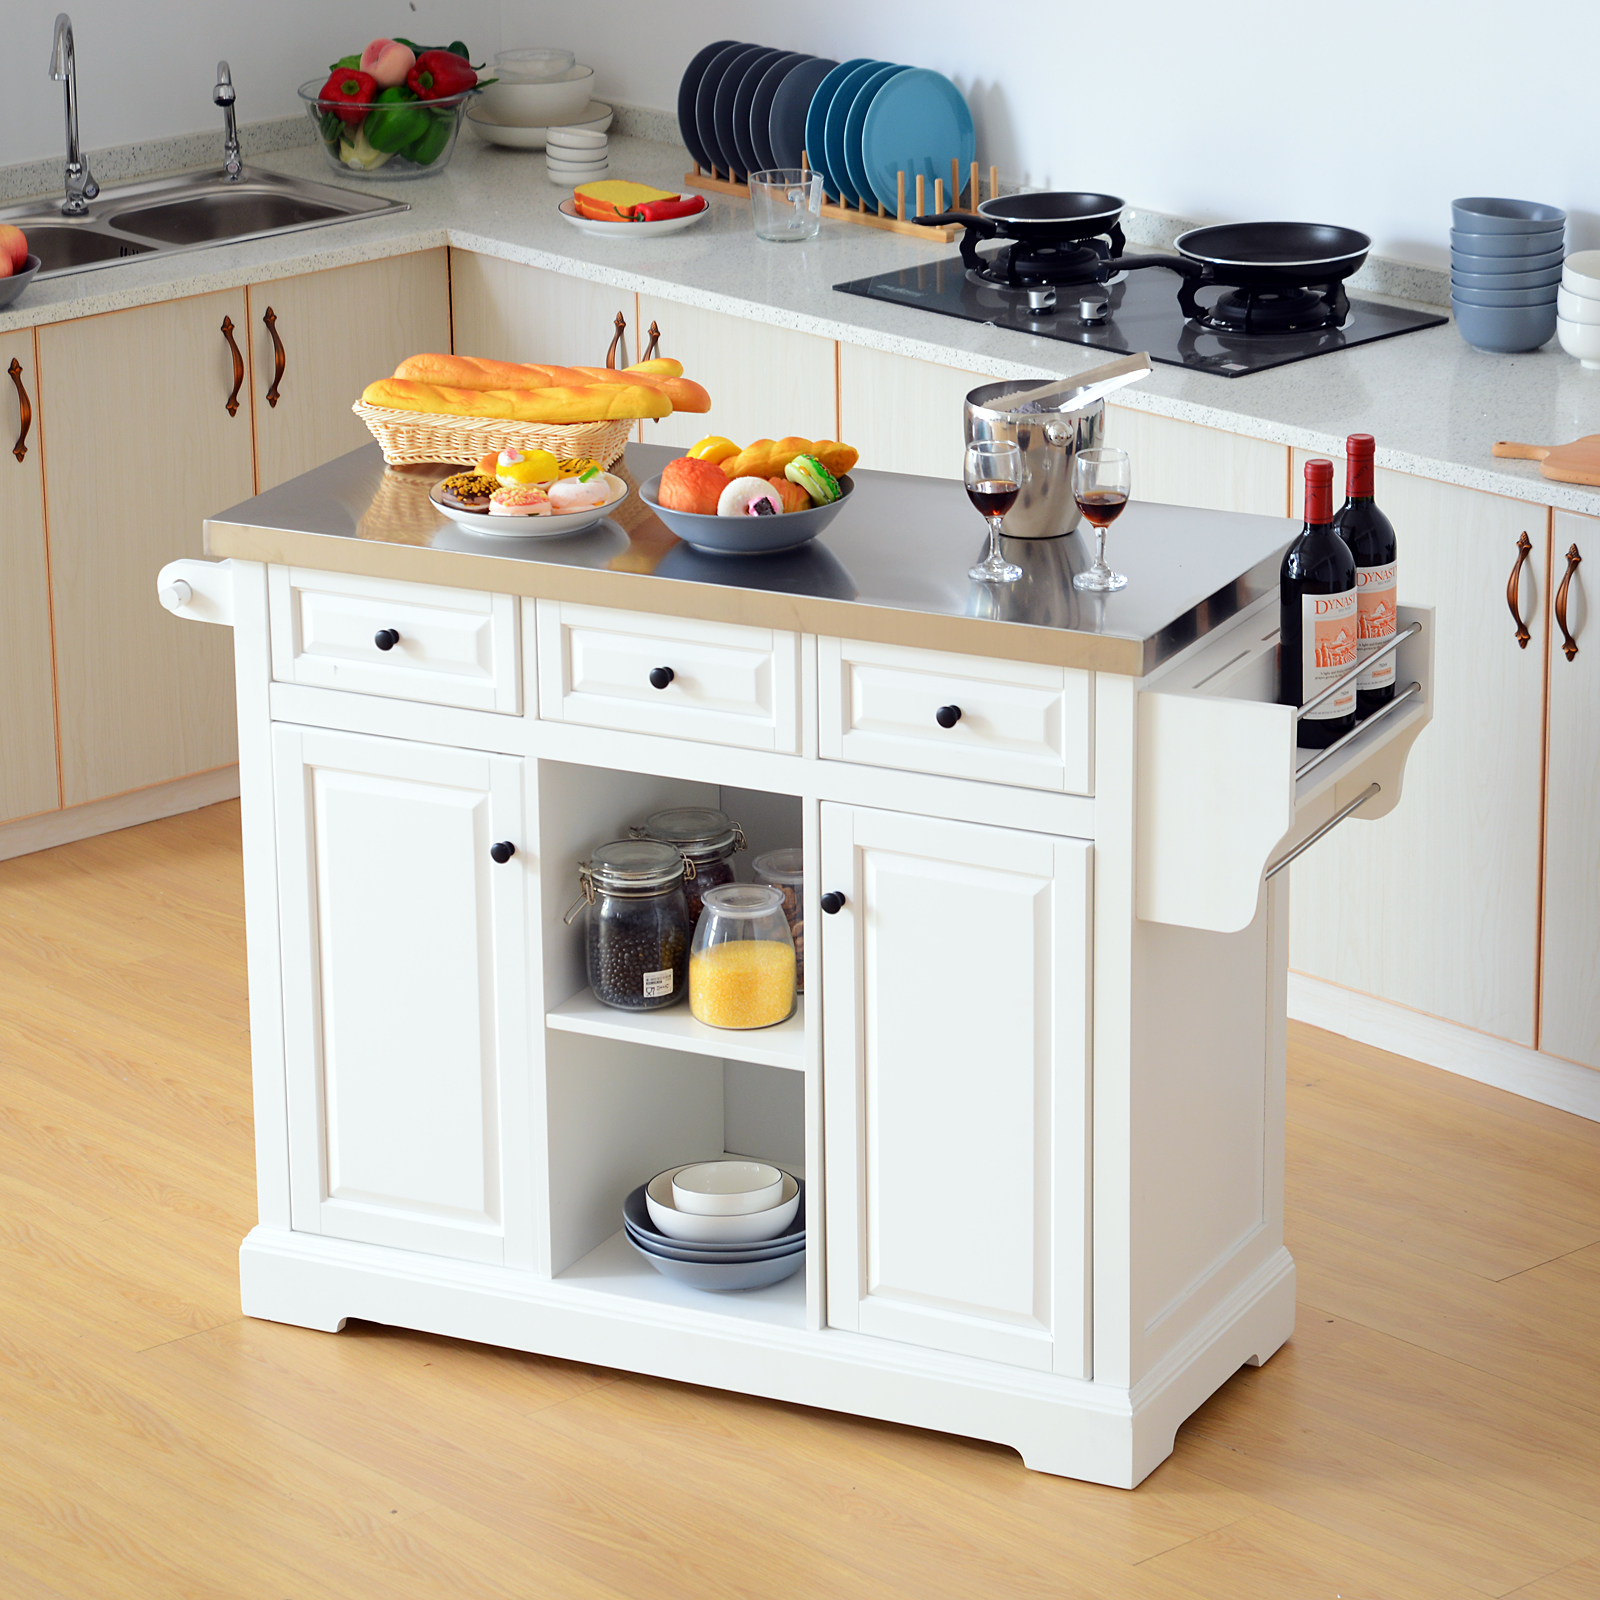 Prime Details About Modern Wooden Rolling Kitchen Cart Island Cabinet Storage Utility White Home Remodeling Inspirations Propsscottssportslandcom